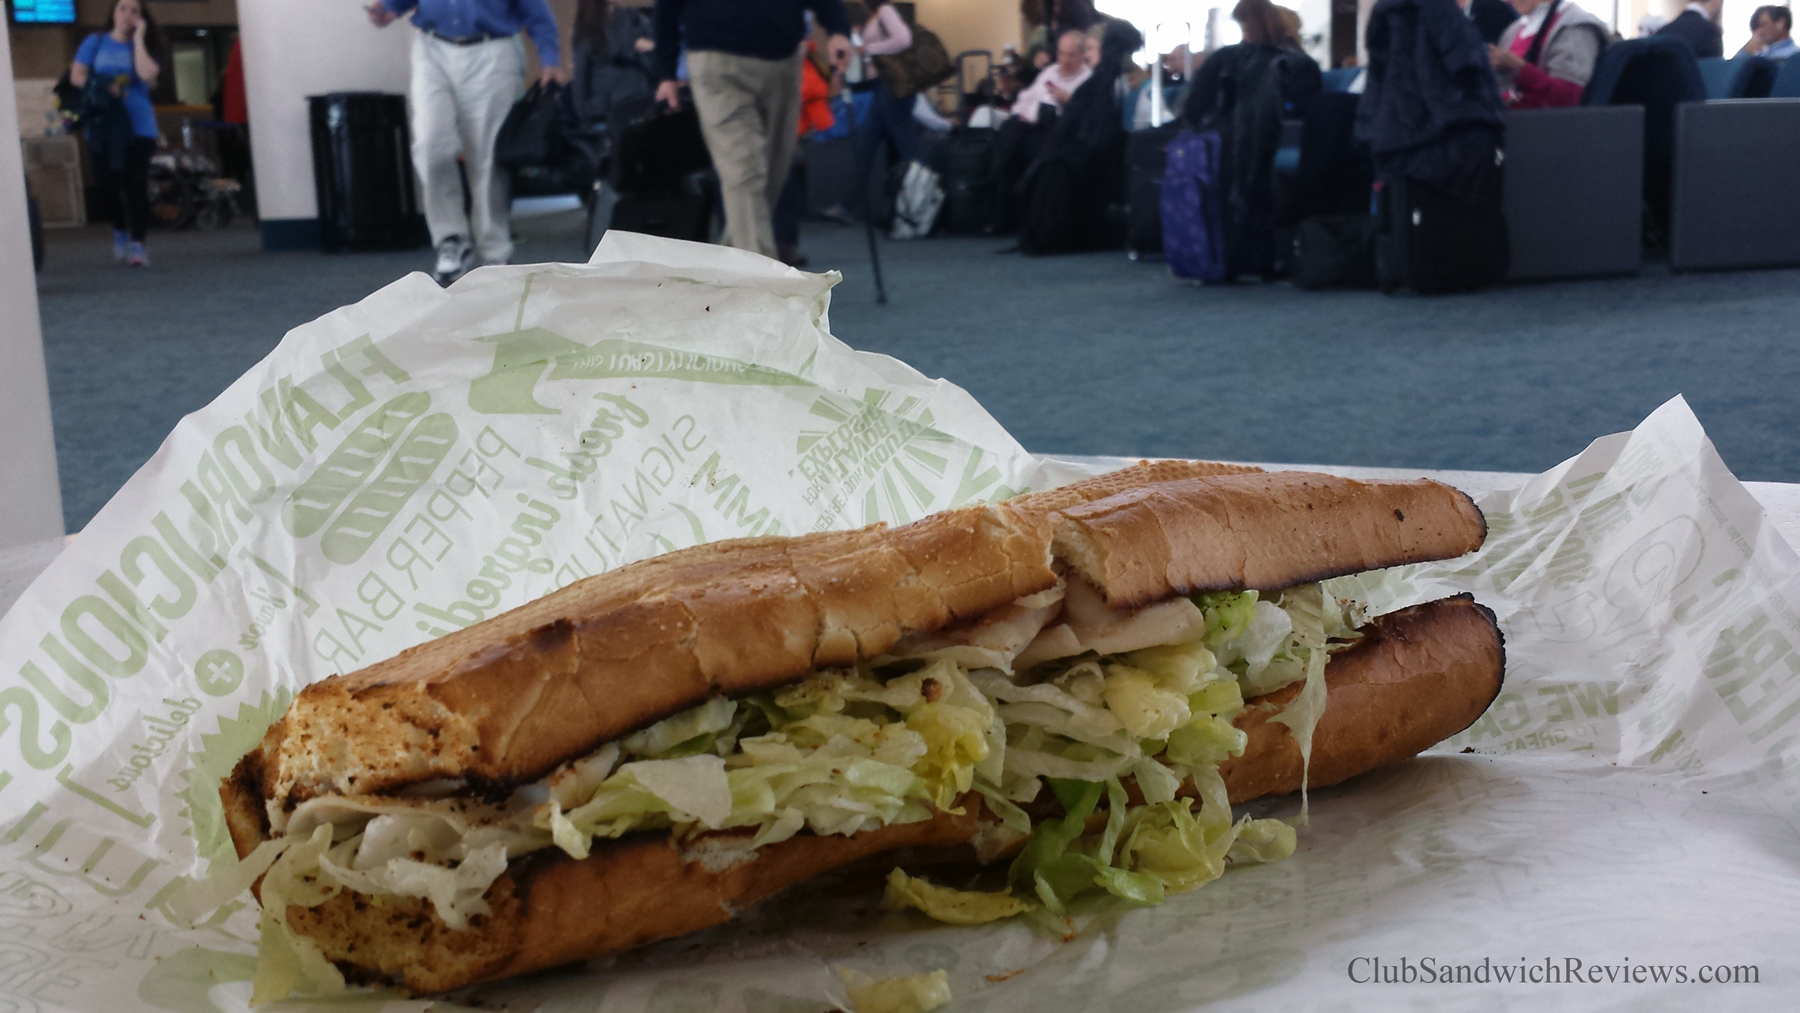 The Ultimate Turkey Club from Quiznos in Palm Beach Airport Reviewed